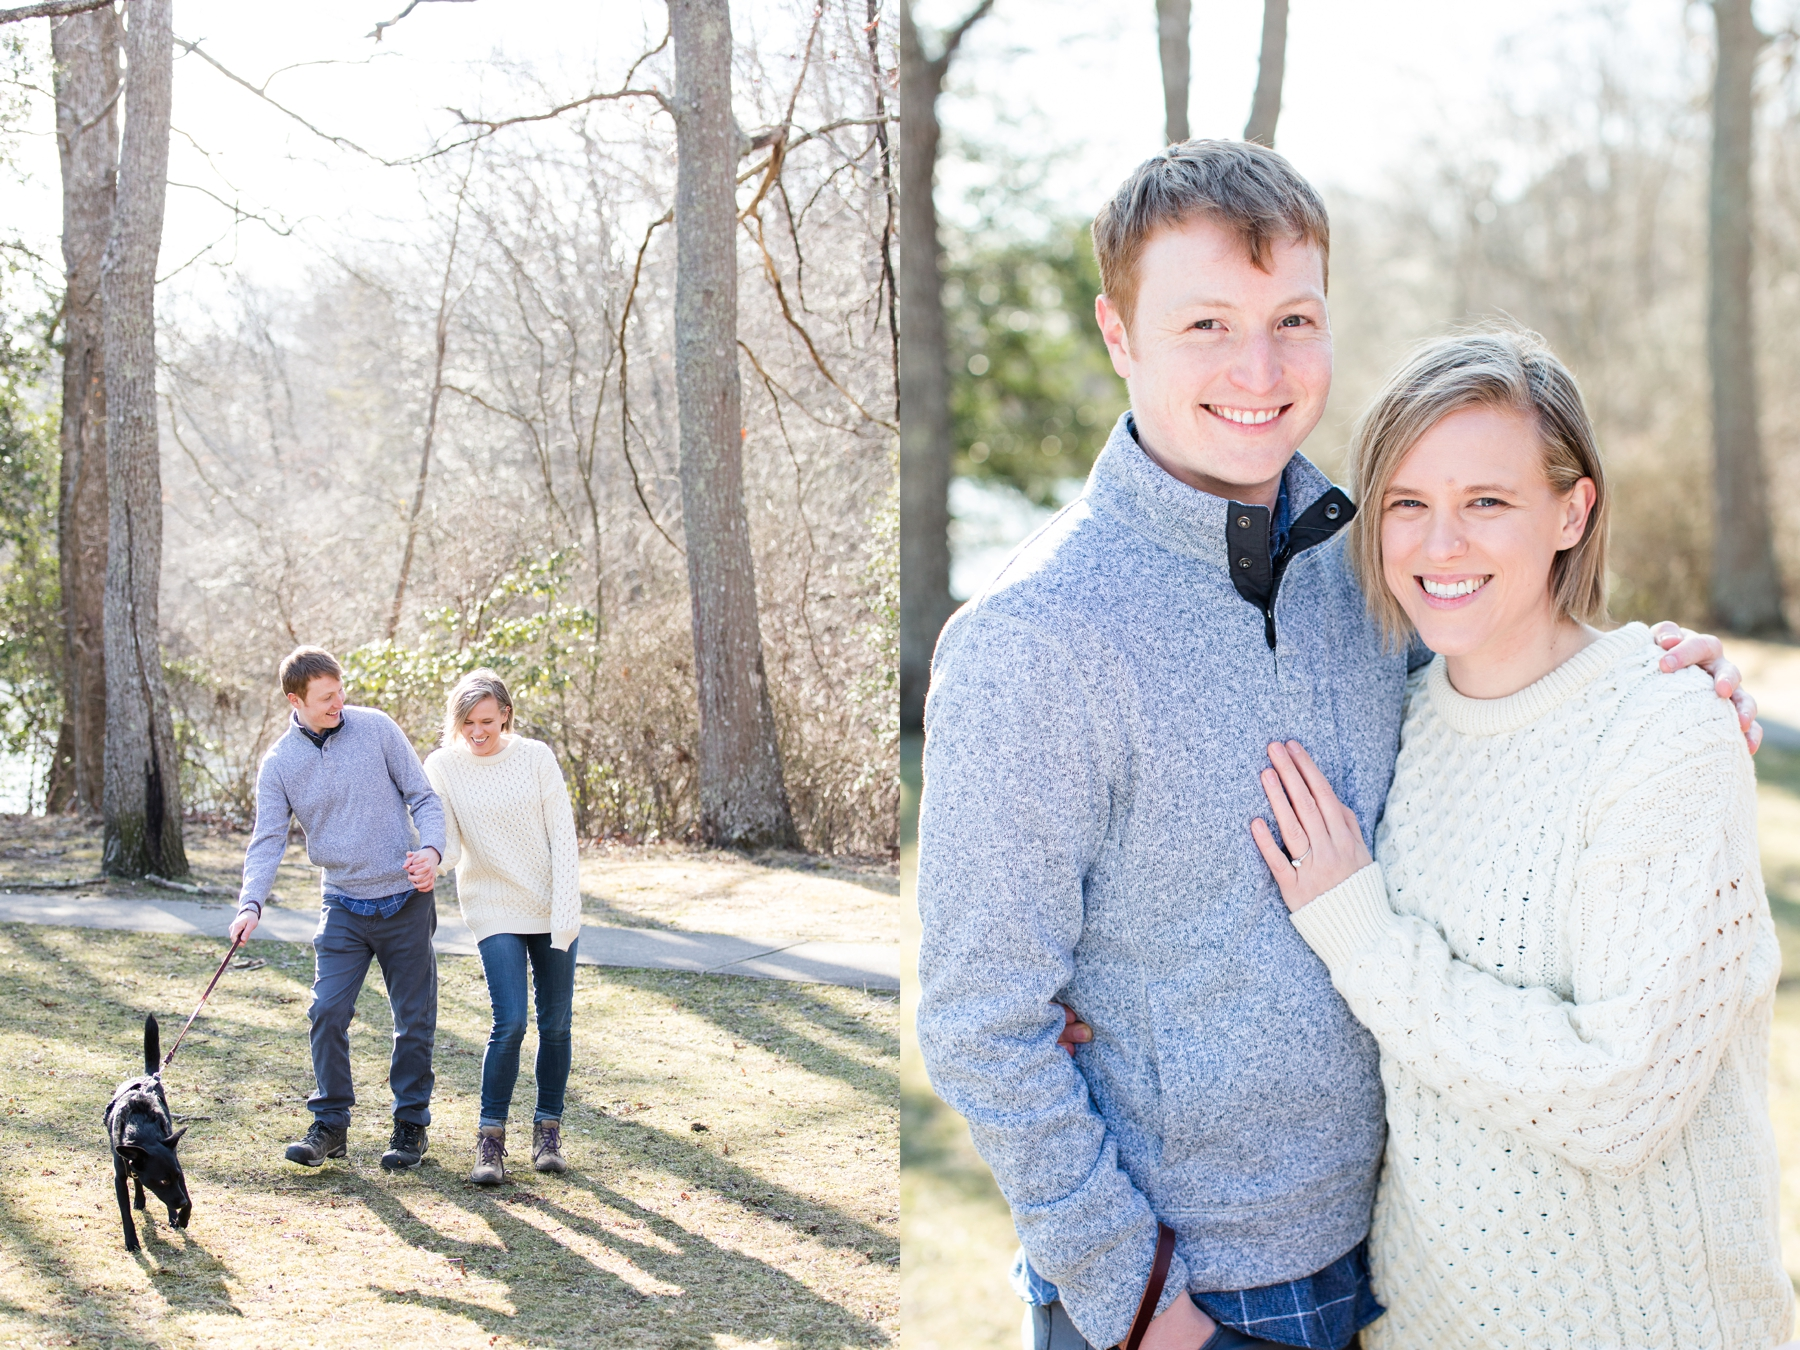 Woodsy Winter Engagement Photos at Allaire Park